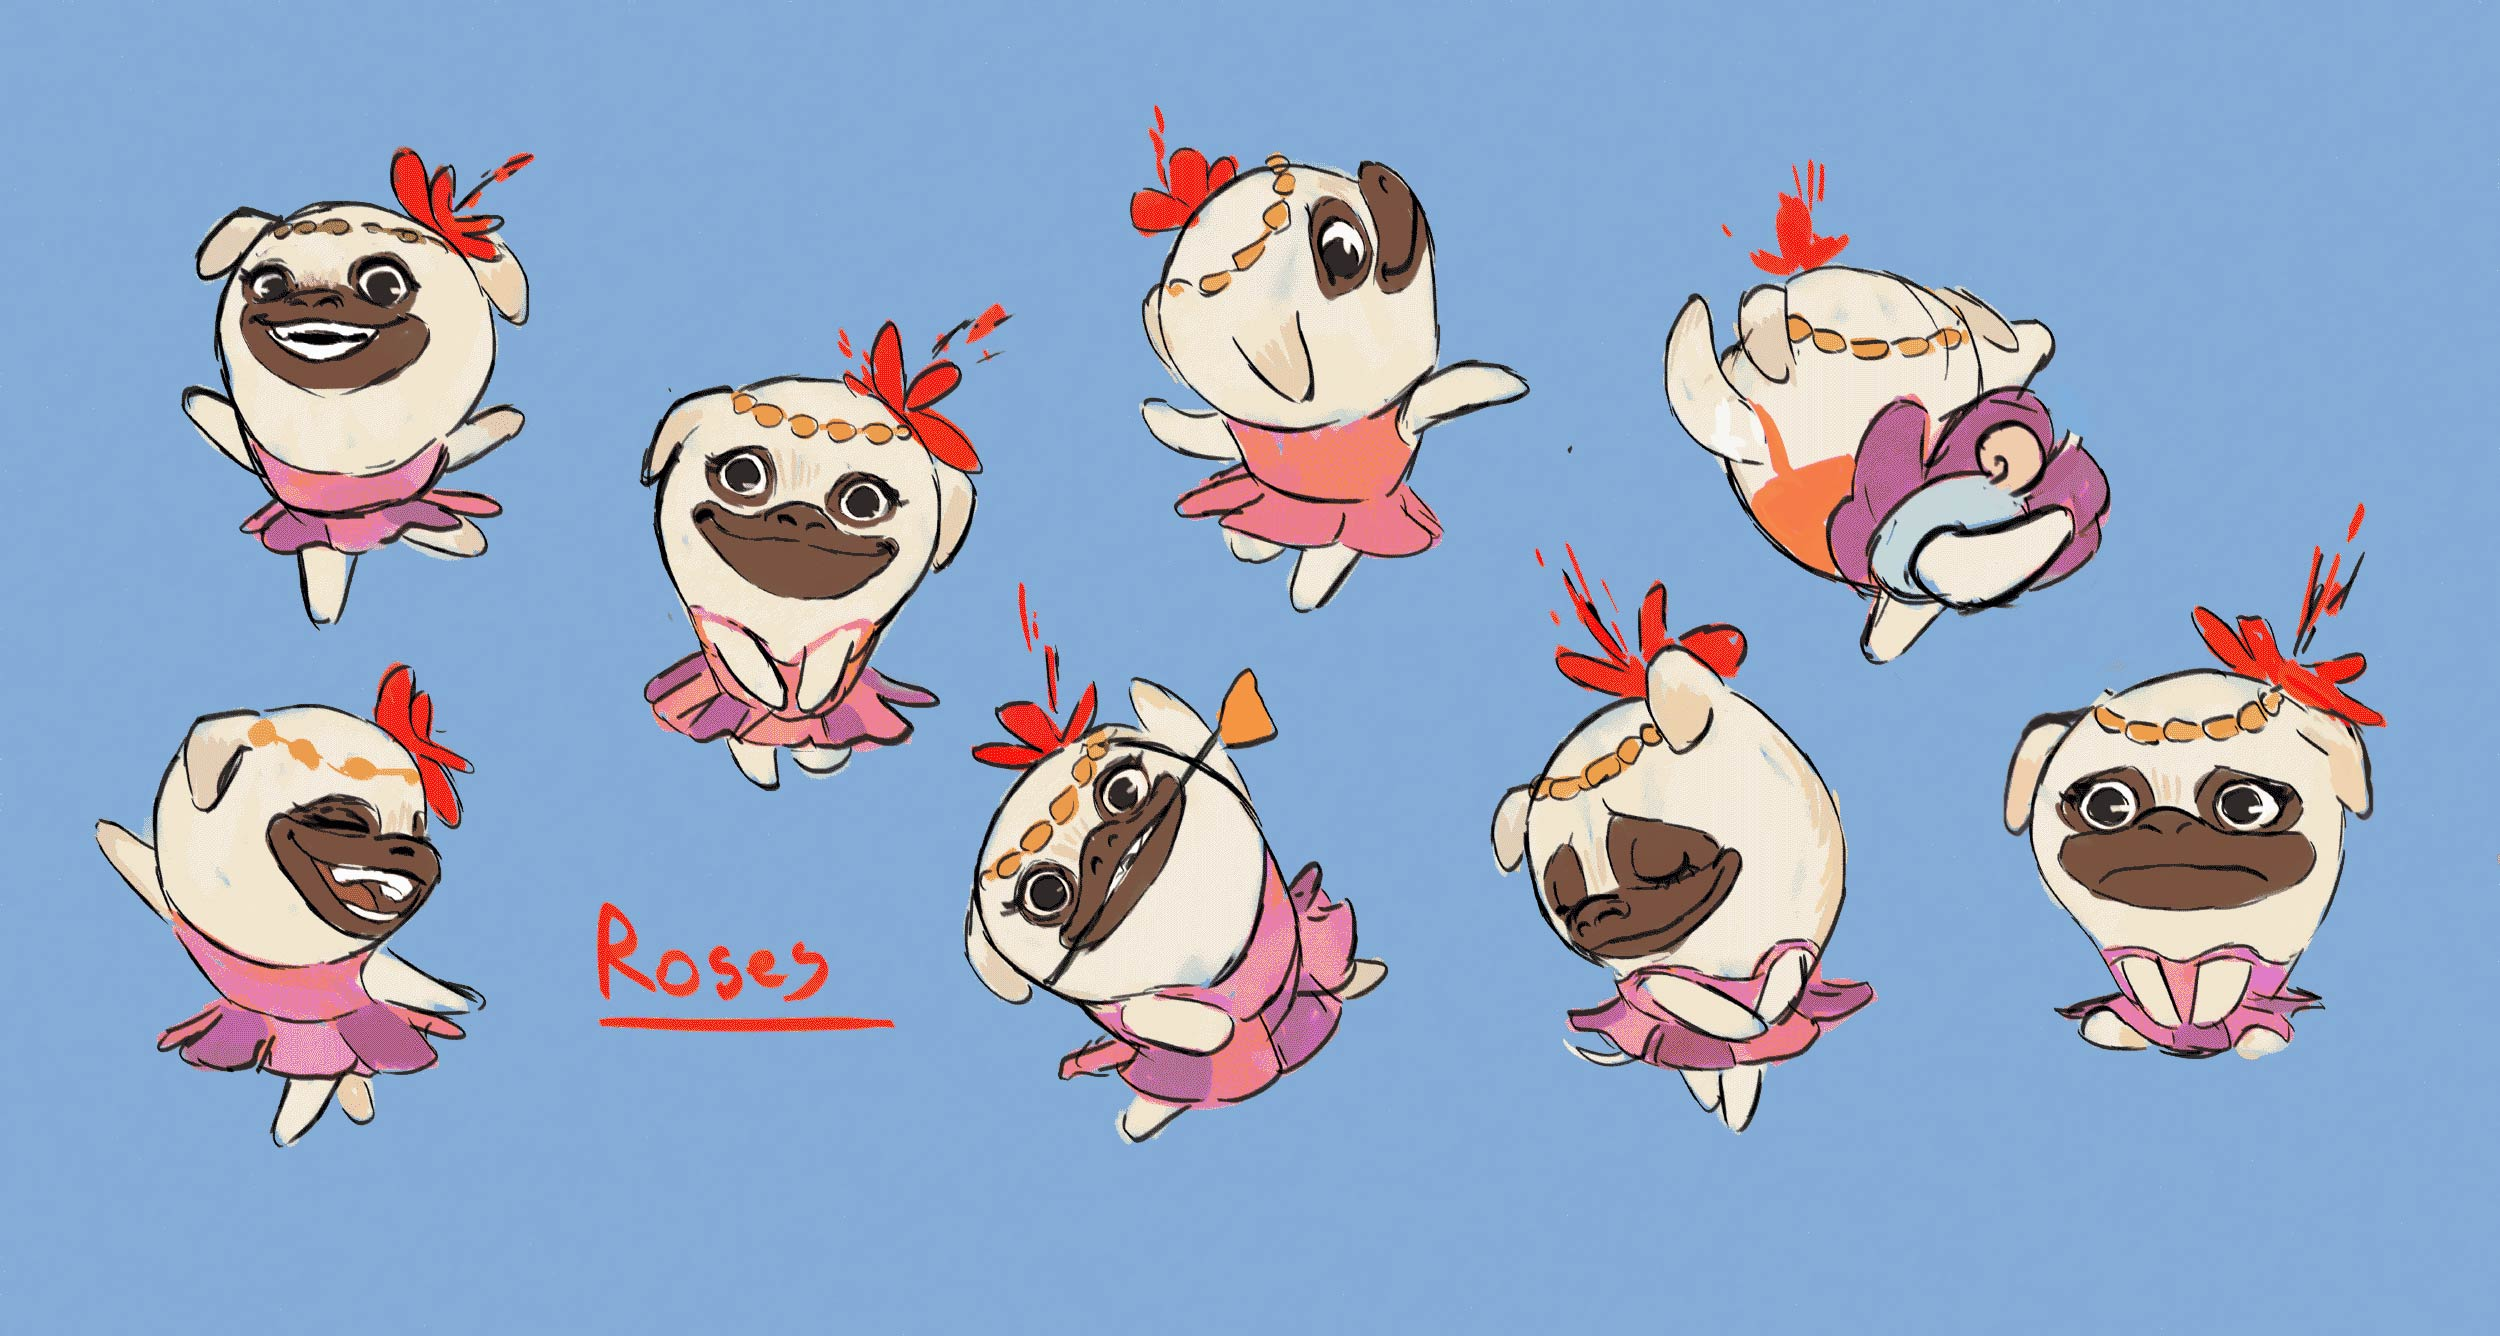 Roses the Pug